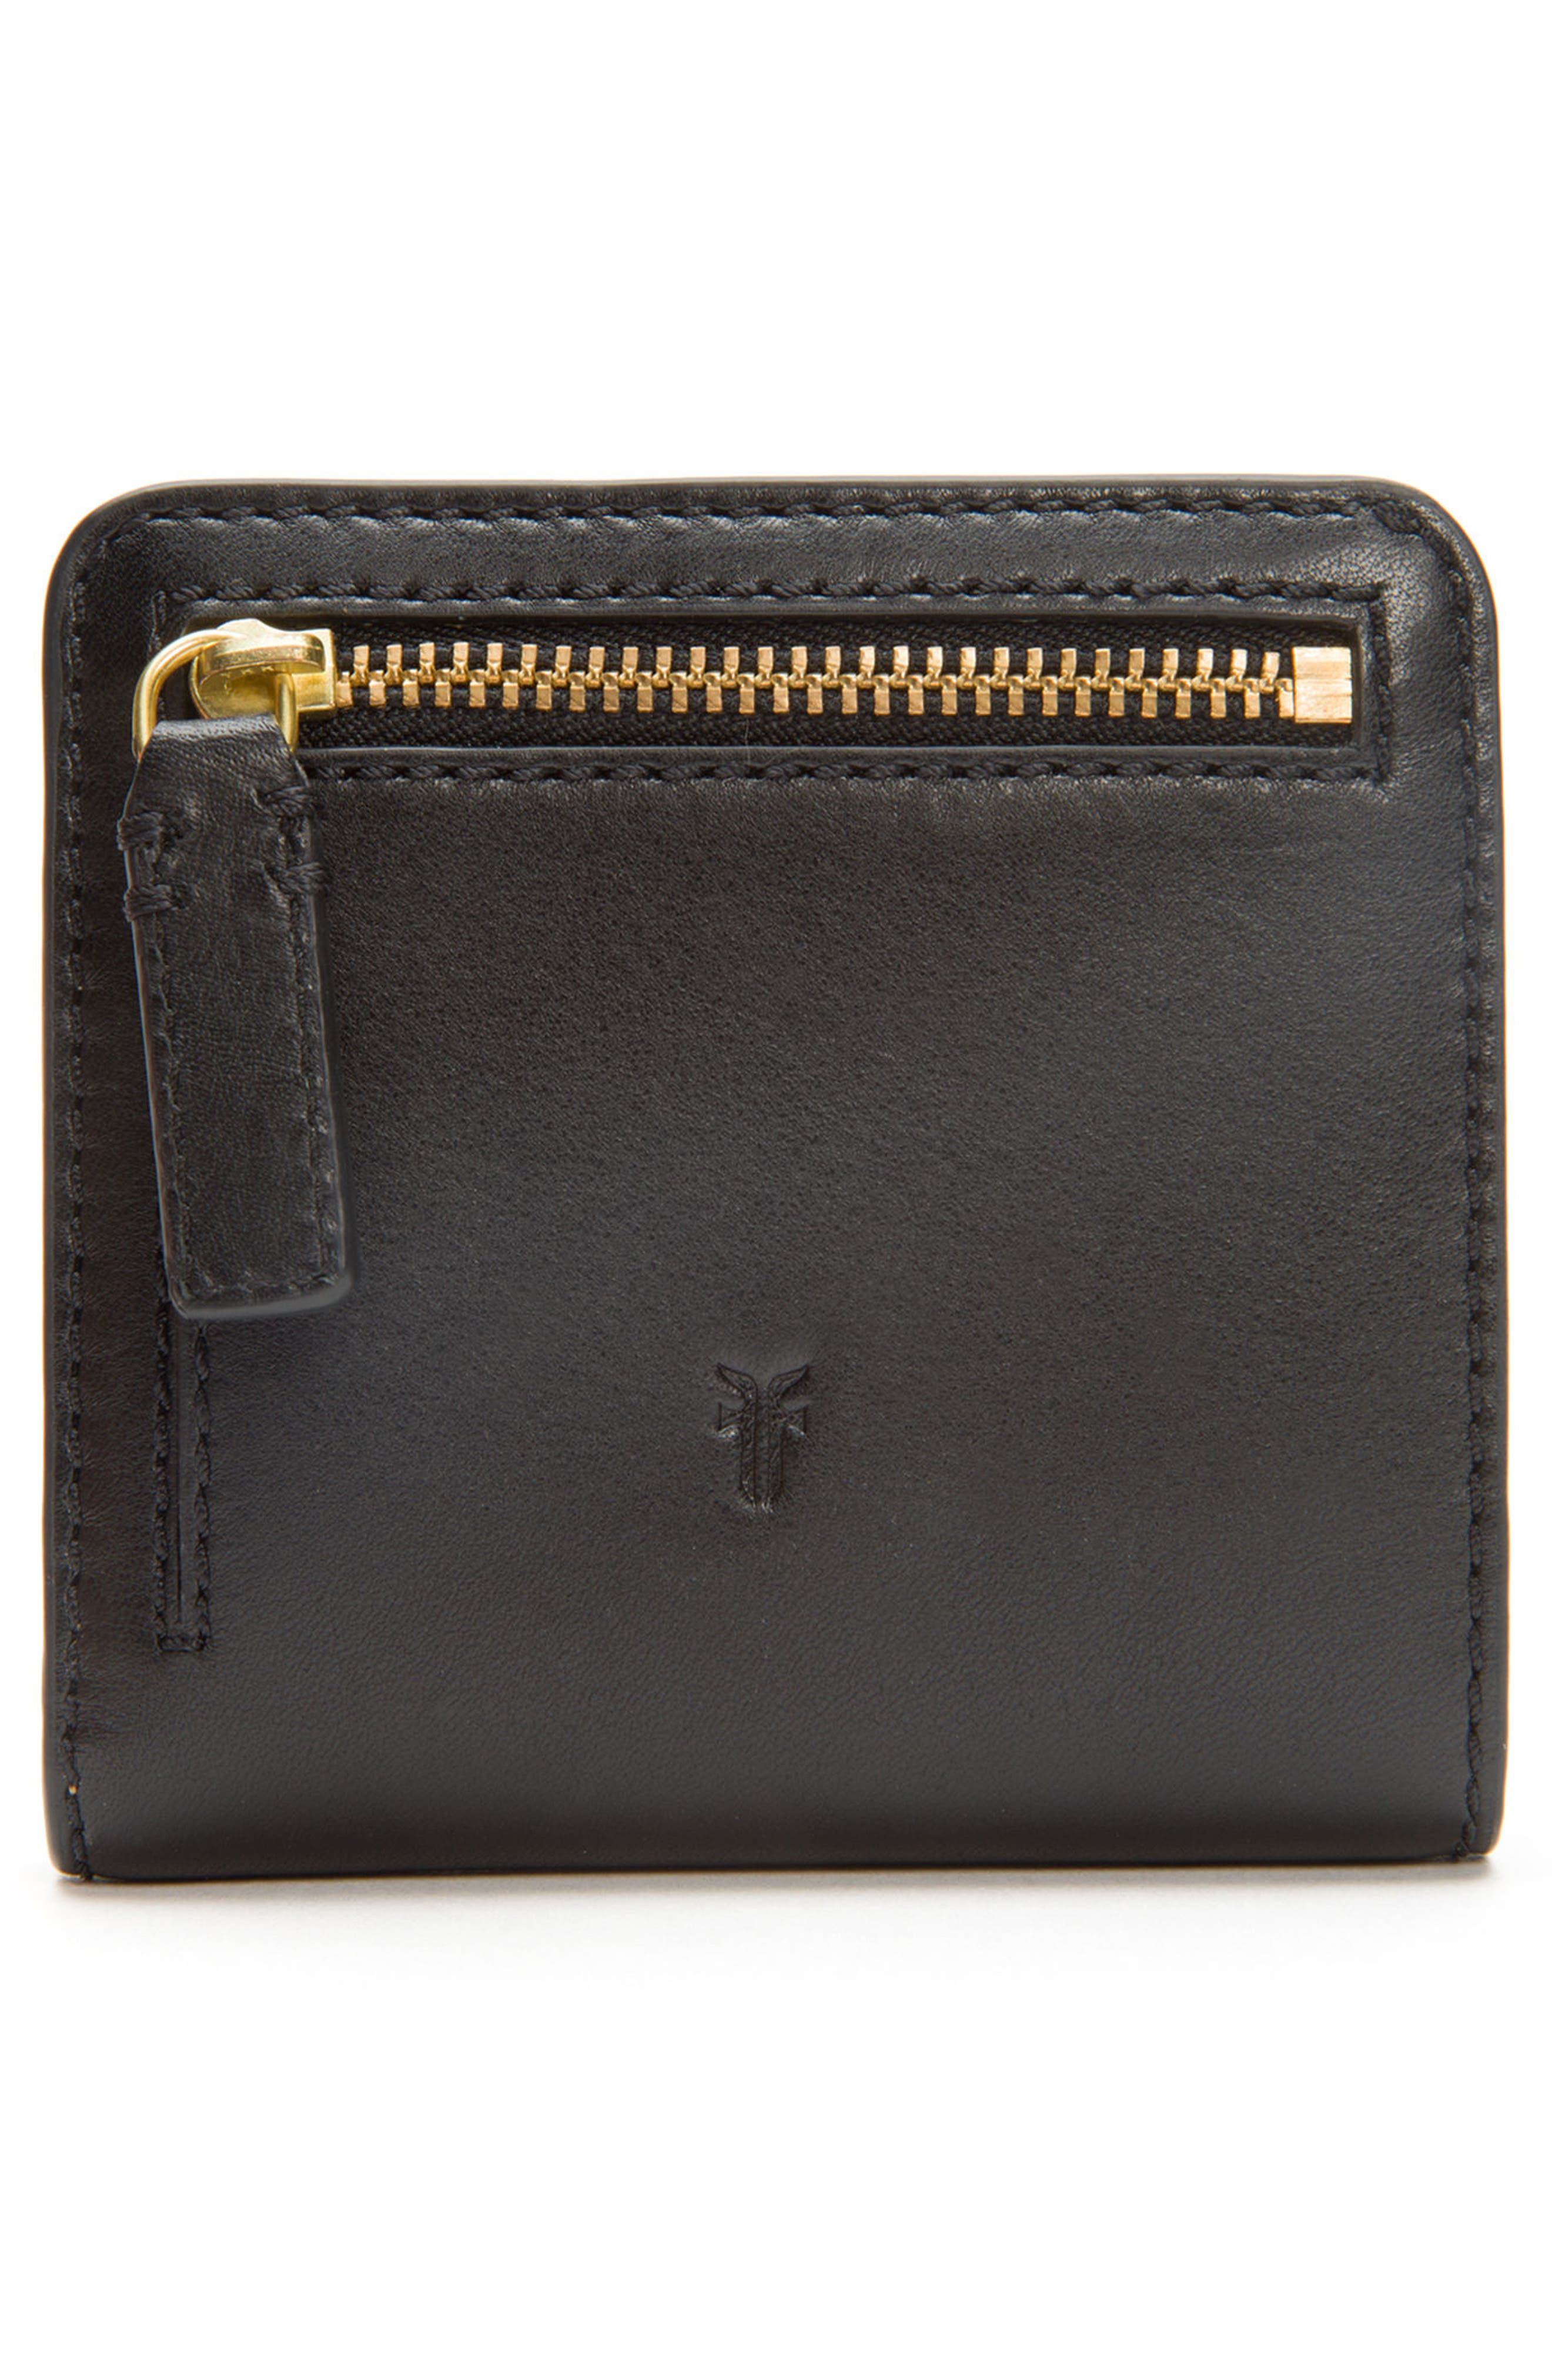 Carson Small Leather Wallet,                             Alternate thumbnail 4, color,                             001